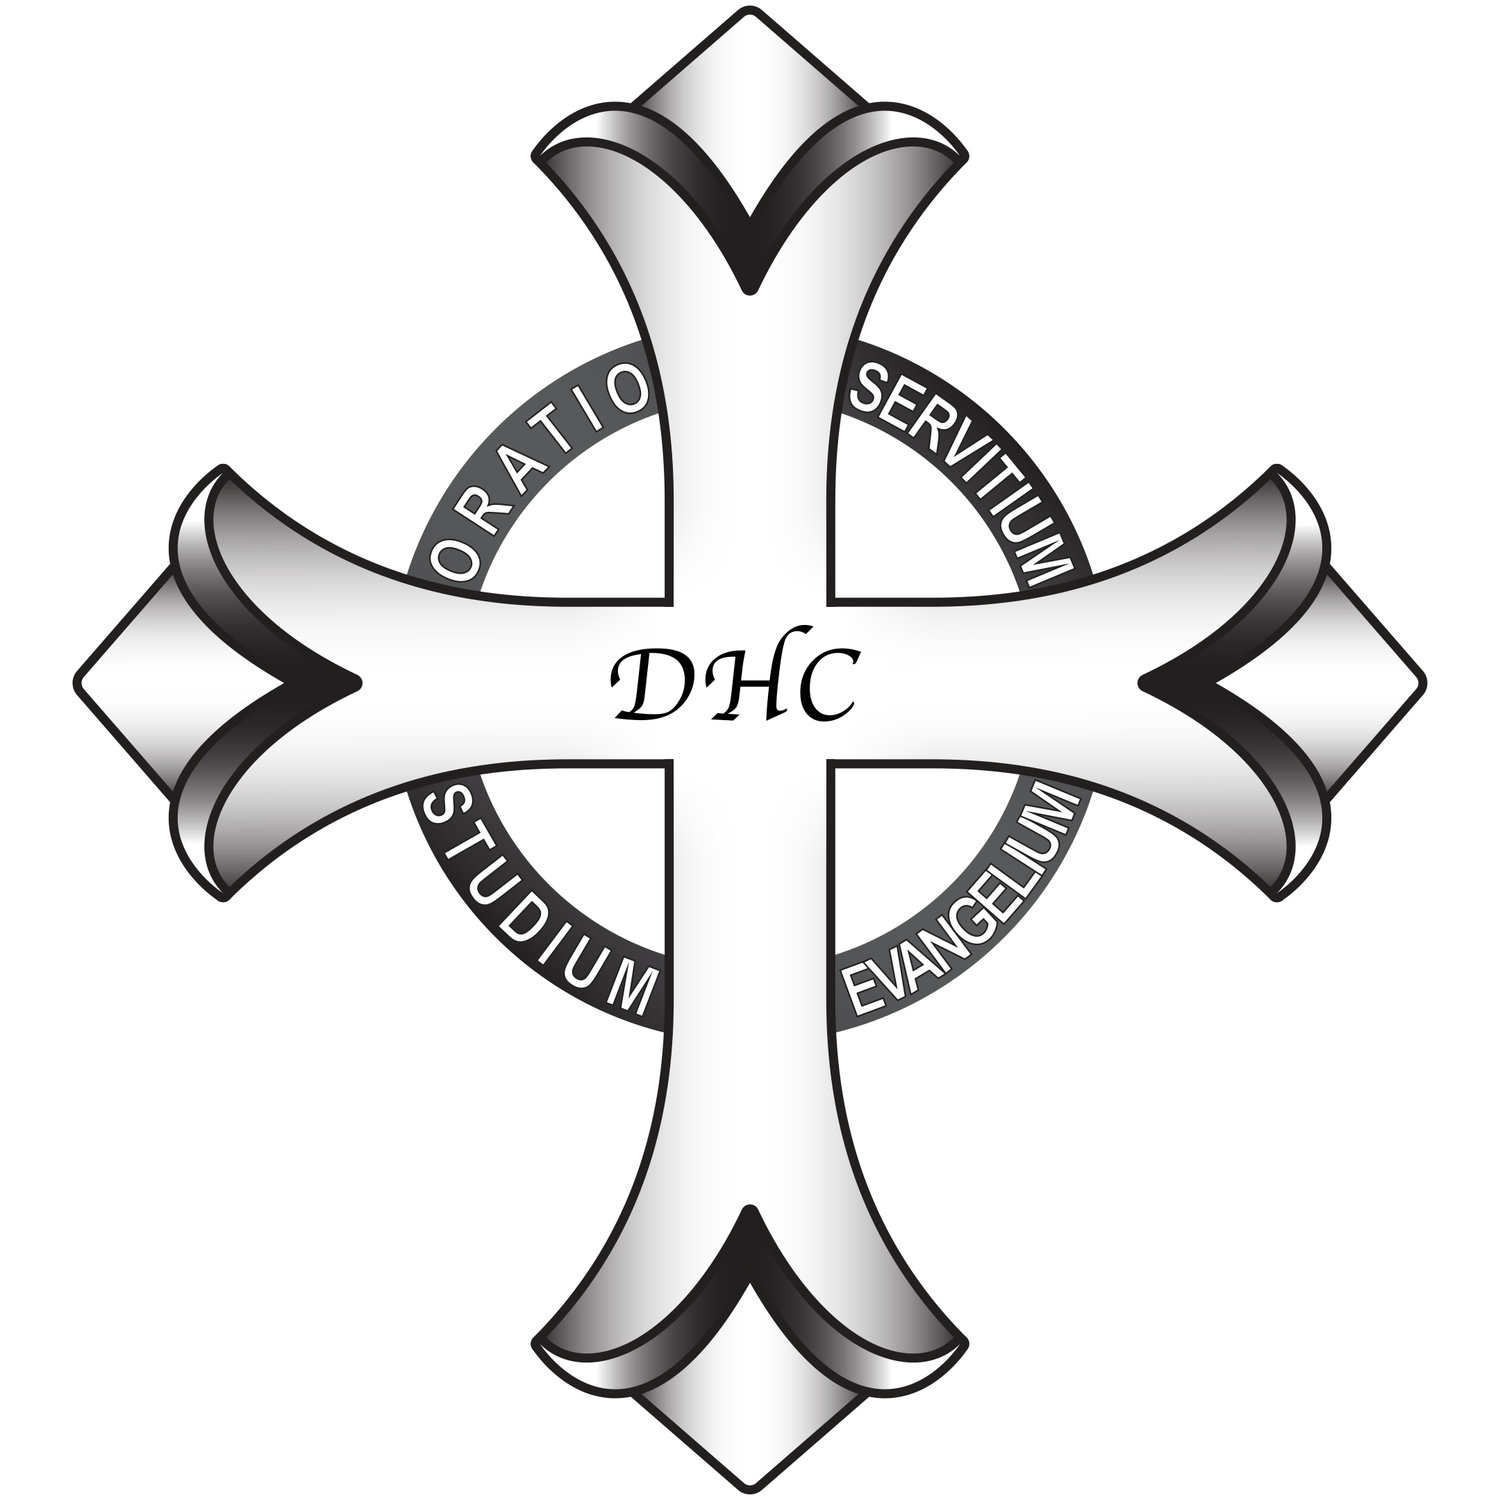 Daughters+of+the+Holy+Cross_DHC_Logo.jpg